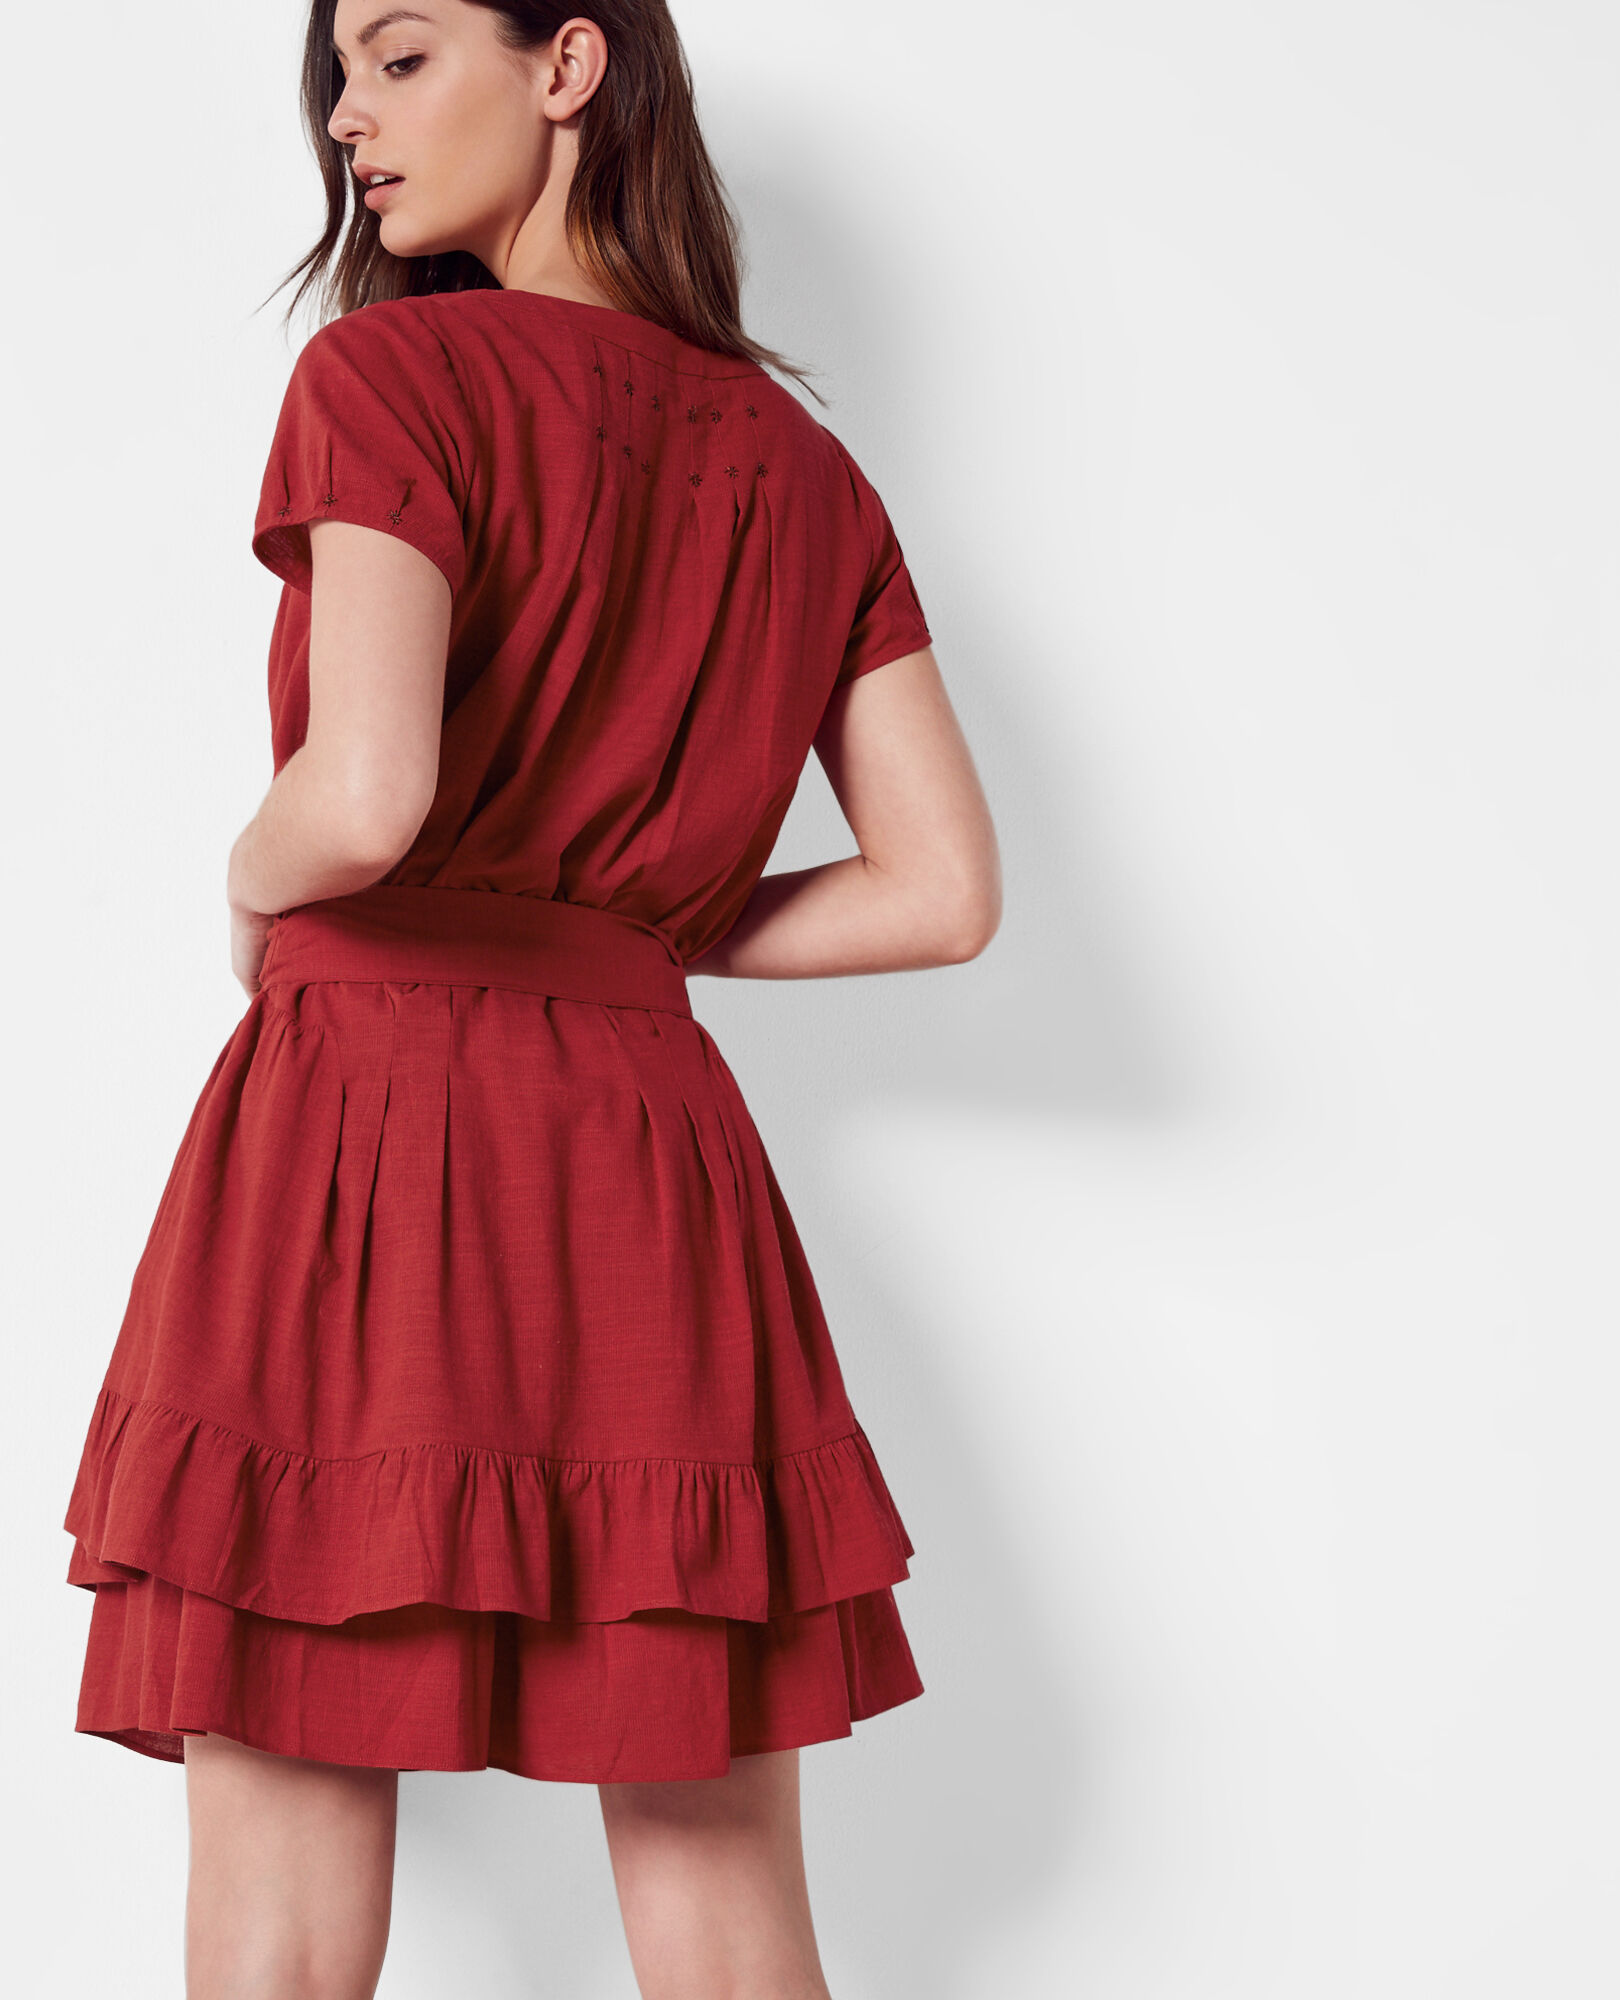 Frilly Red Dress